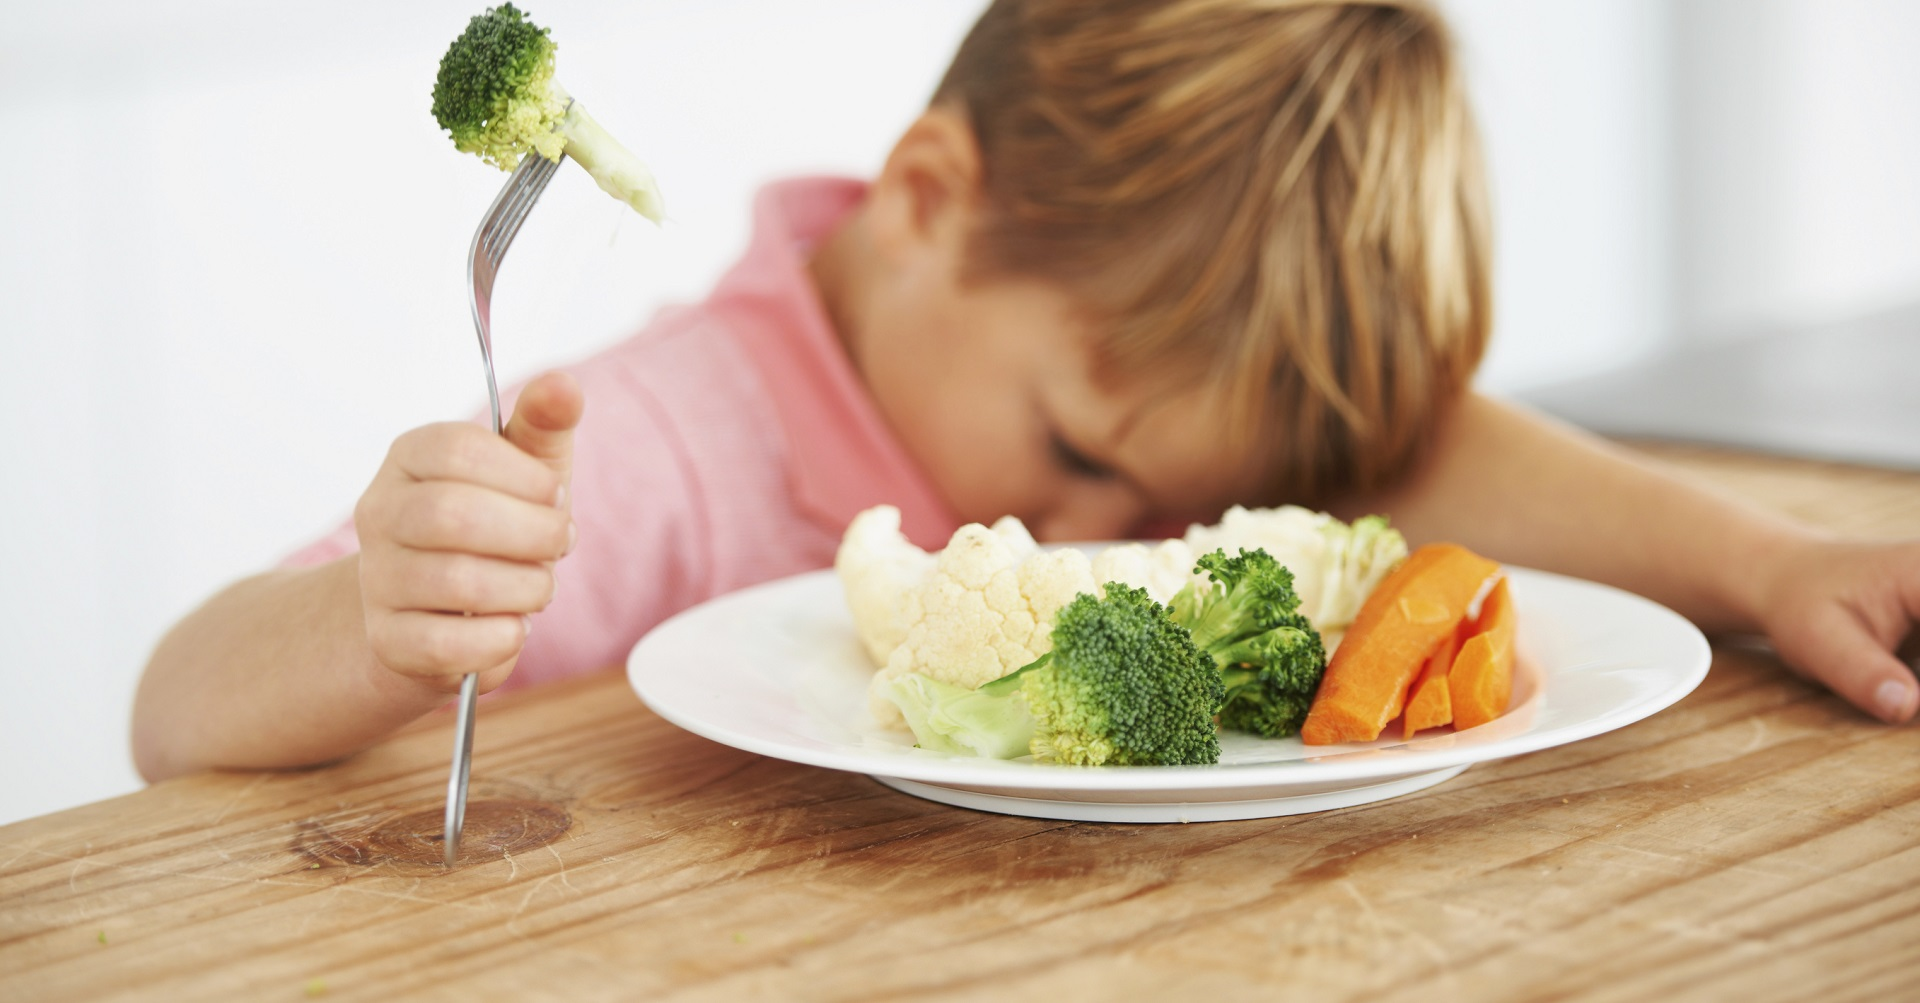 child sitting in front of plate of veggies